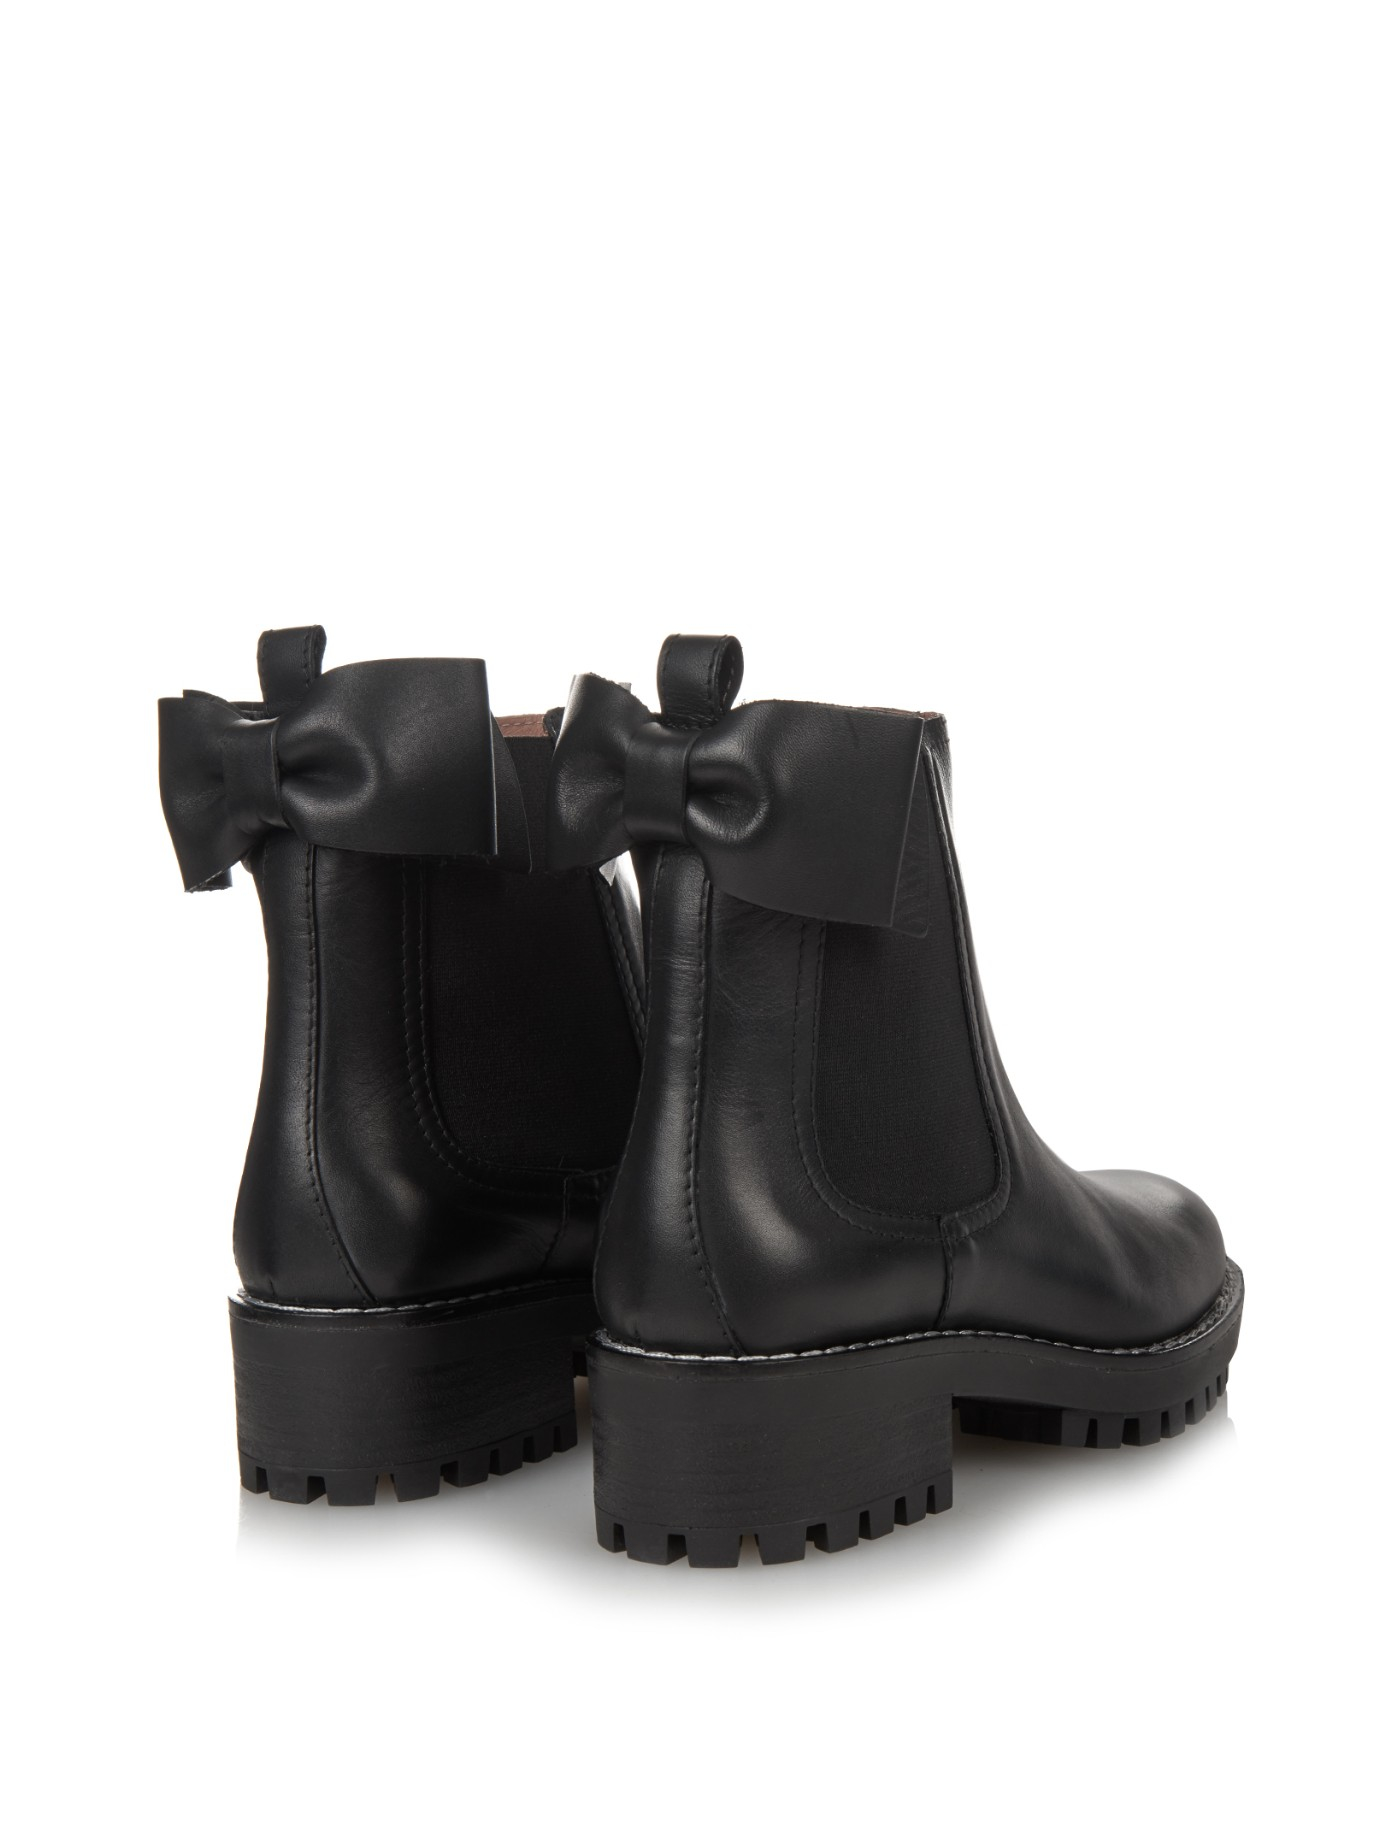 36294f19d0f35 Rubber Sole Chelsea Boots - Ivoiregion